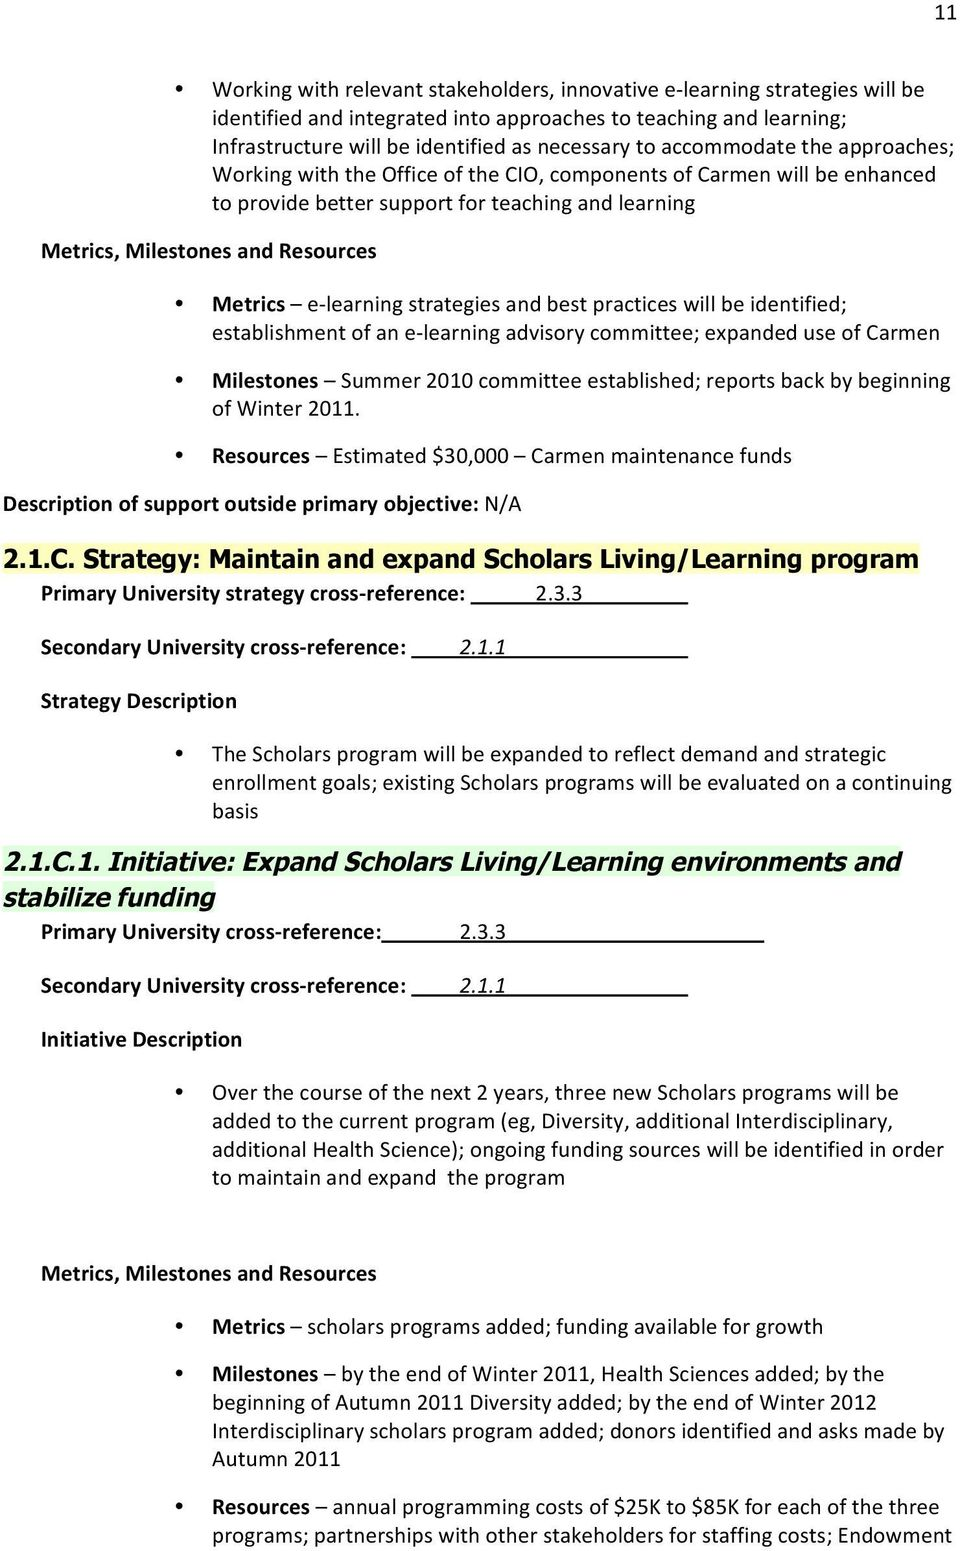 practices will be identified; establishment of an e- learning advisory committee; expanded use of Carmen Milestones Summer 2010 committee established; reports back by beginning of Winter 2011.